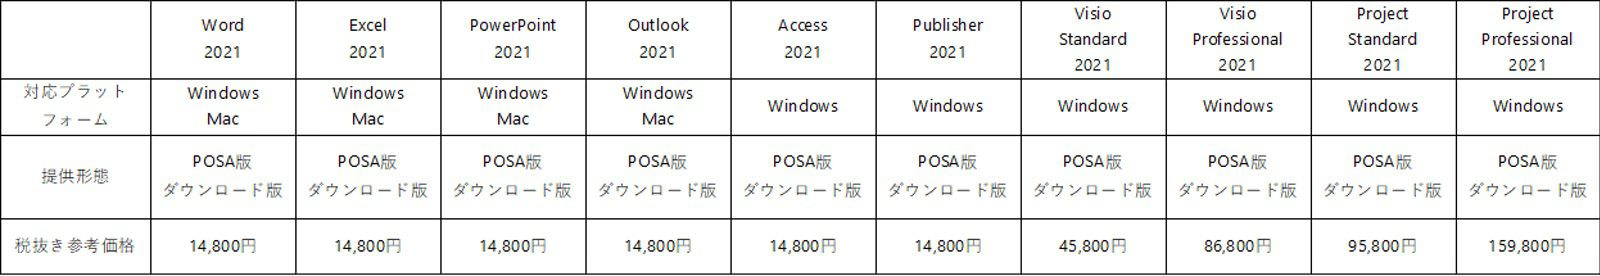 Office 2021 pricing 2